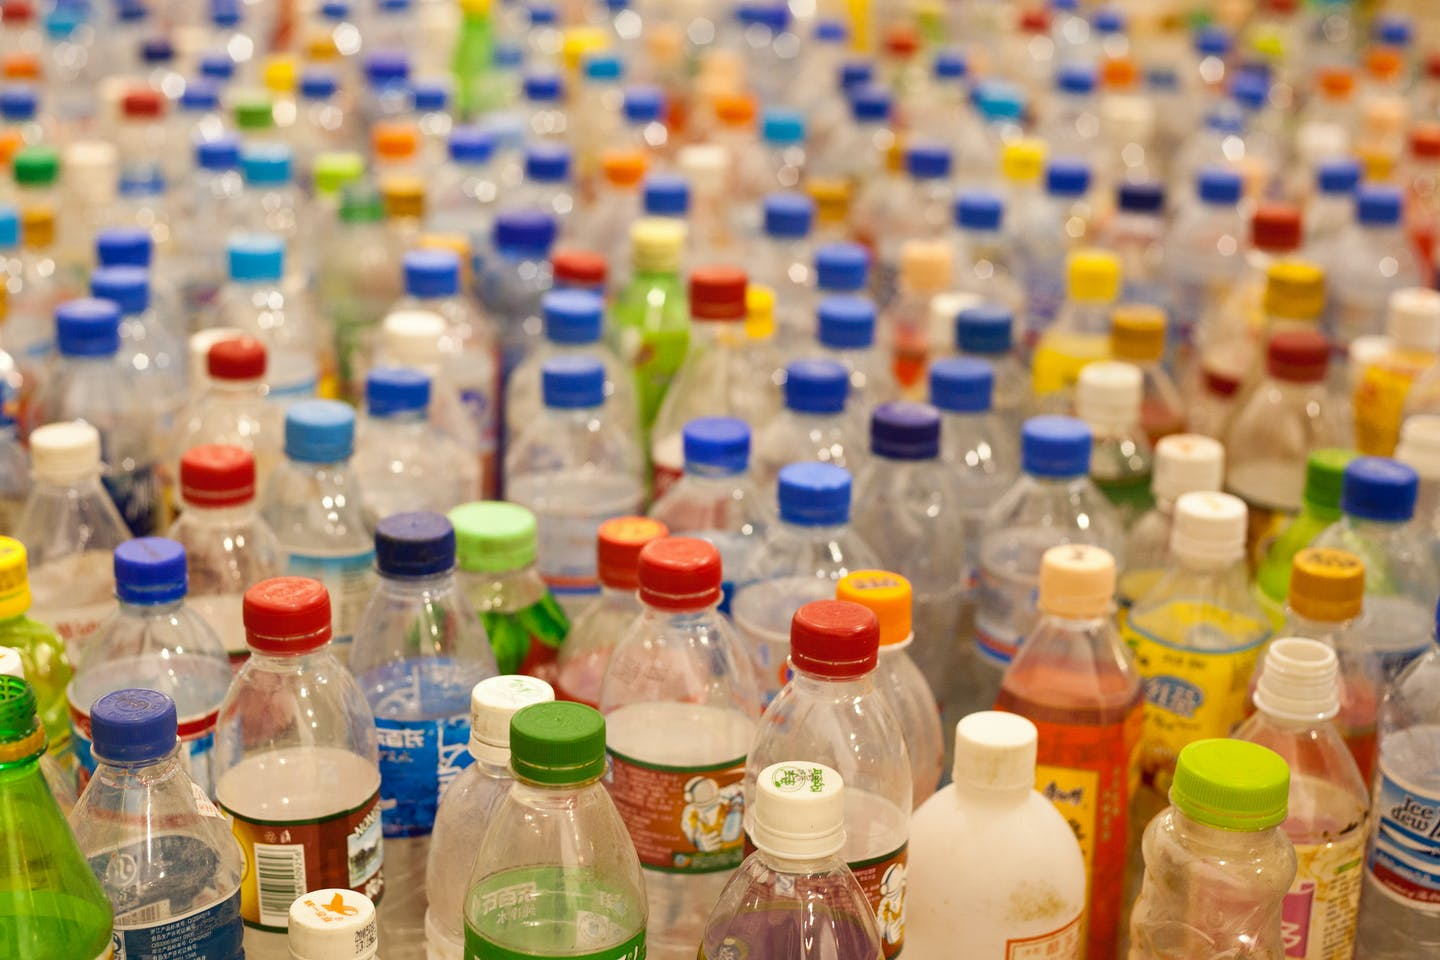 a sea of plastic bottles lined up